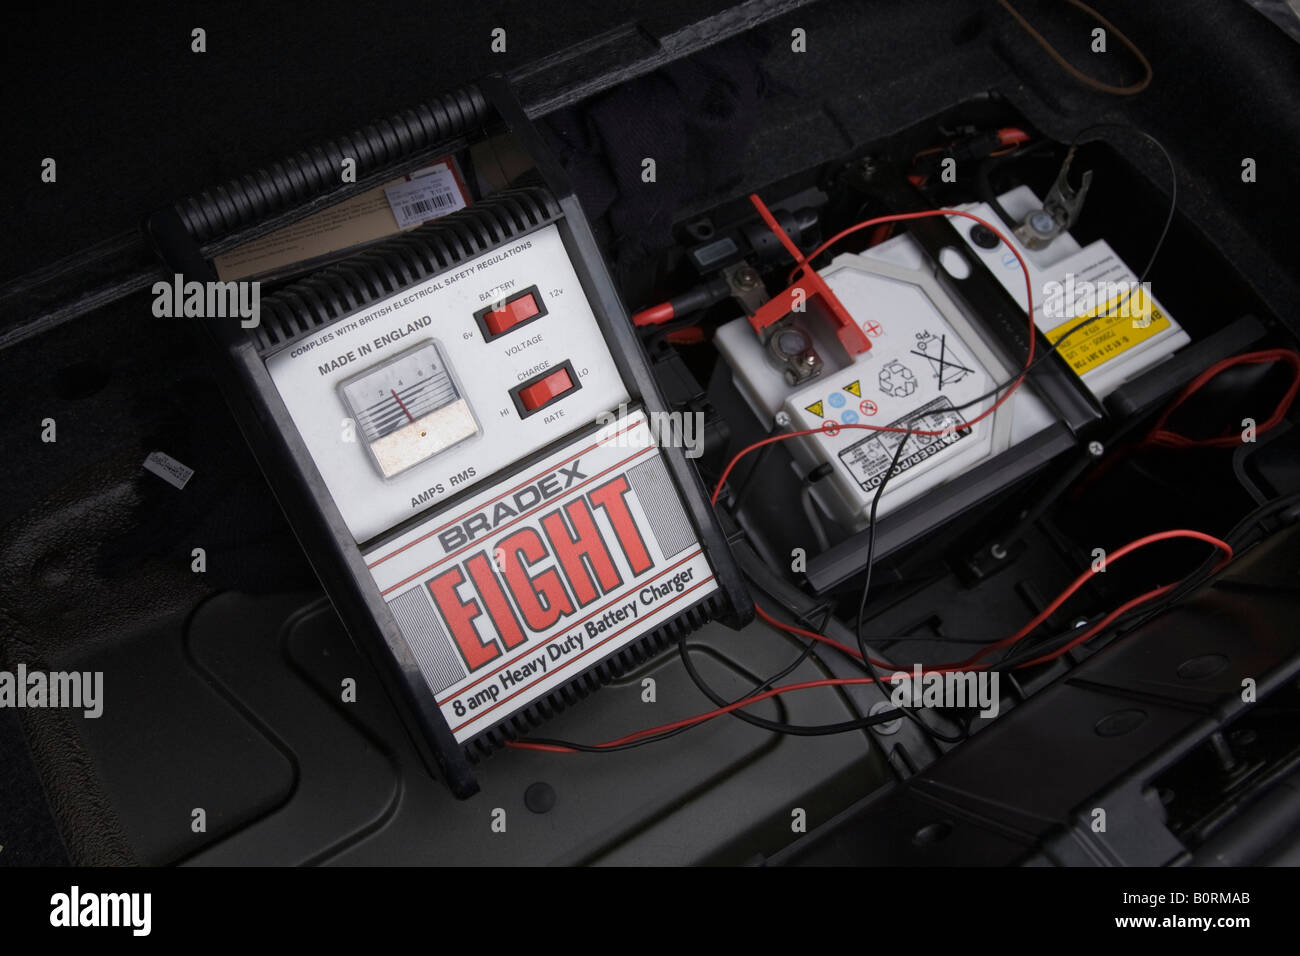 Car Battery Charger Charges A Flat 12v Car Battery In A